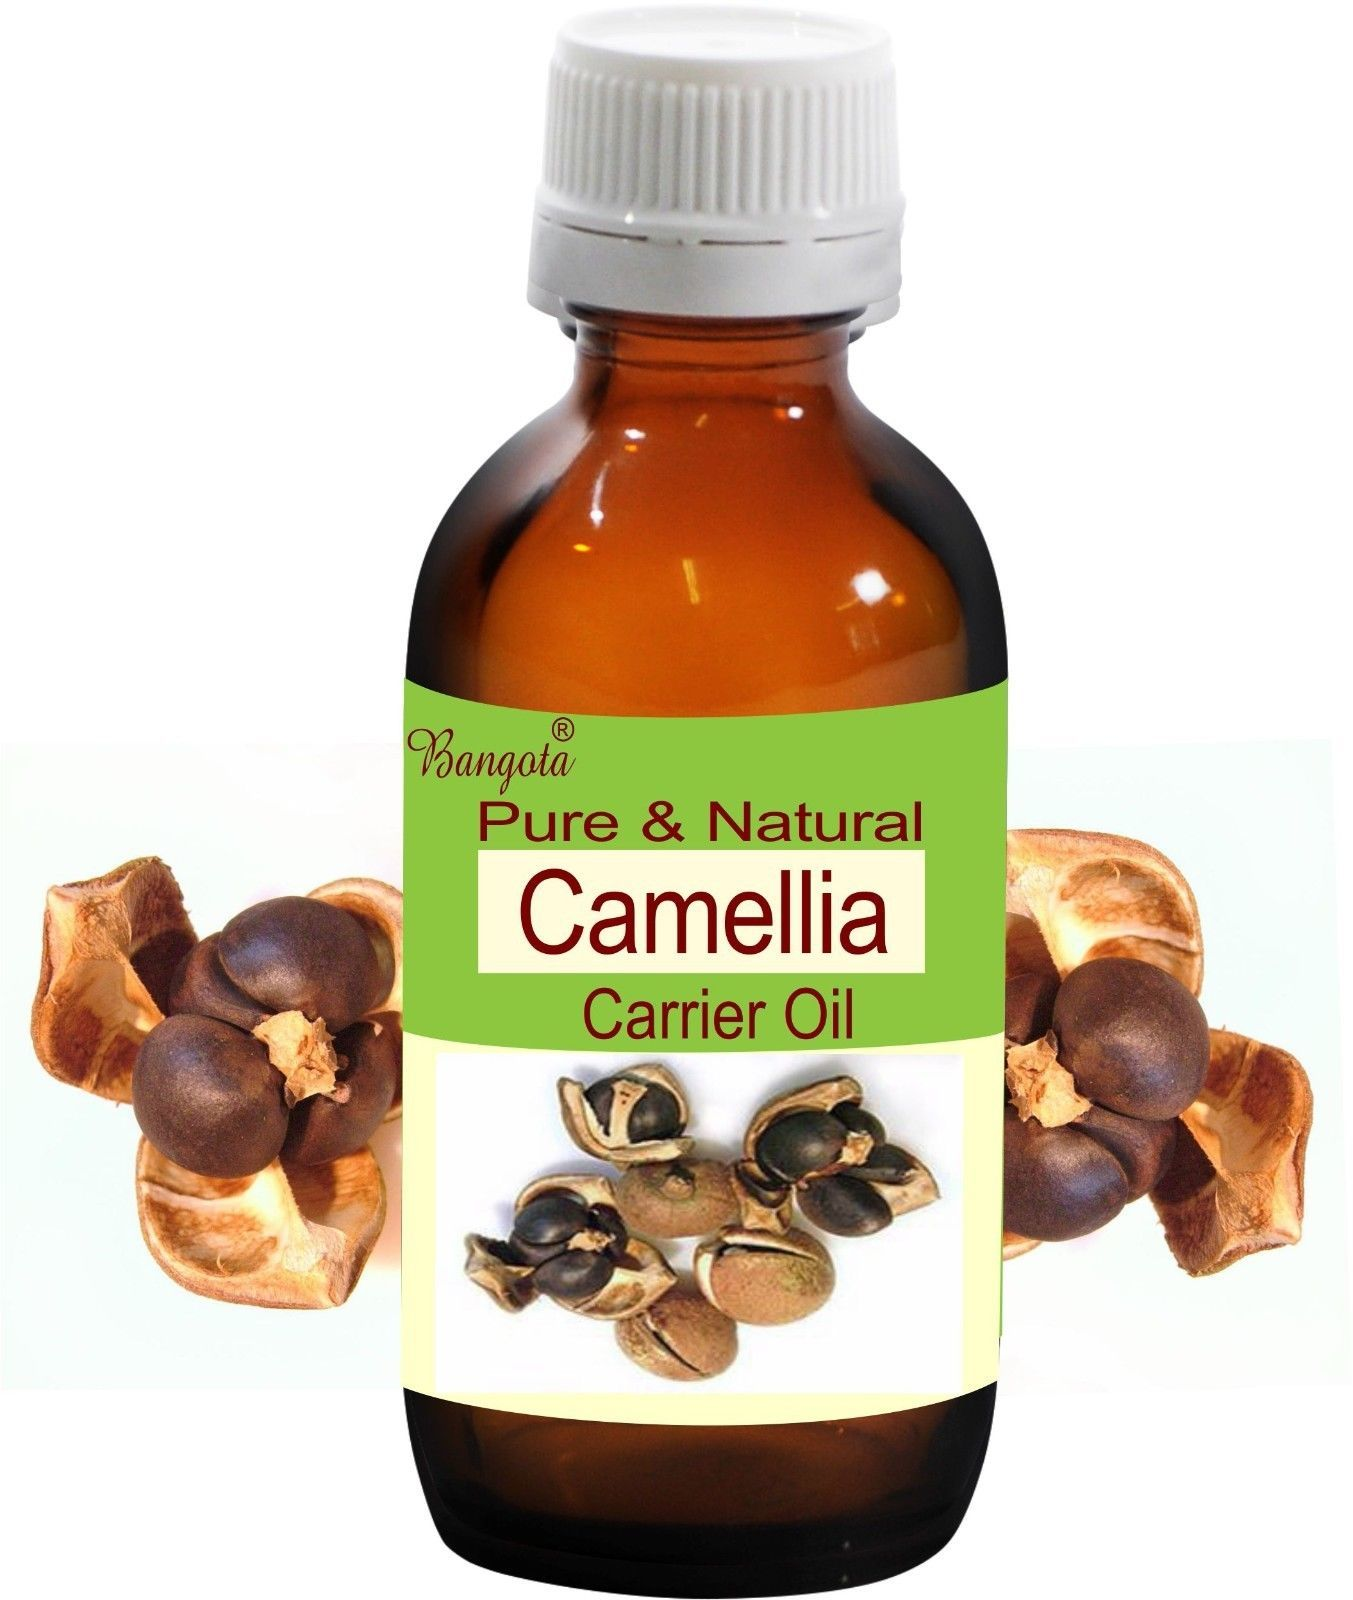 Camellia Pure Natural Carrier Oil- 5 ml to 250 ml- Camellia sinensis by Bangota